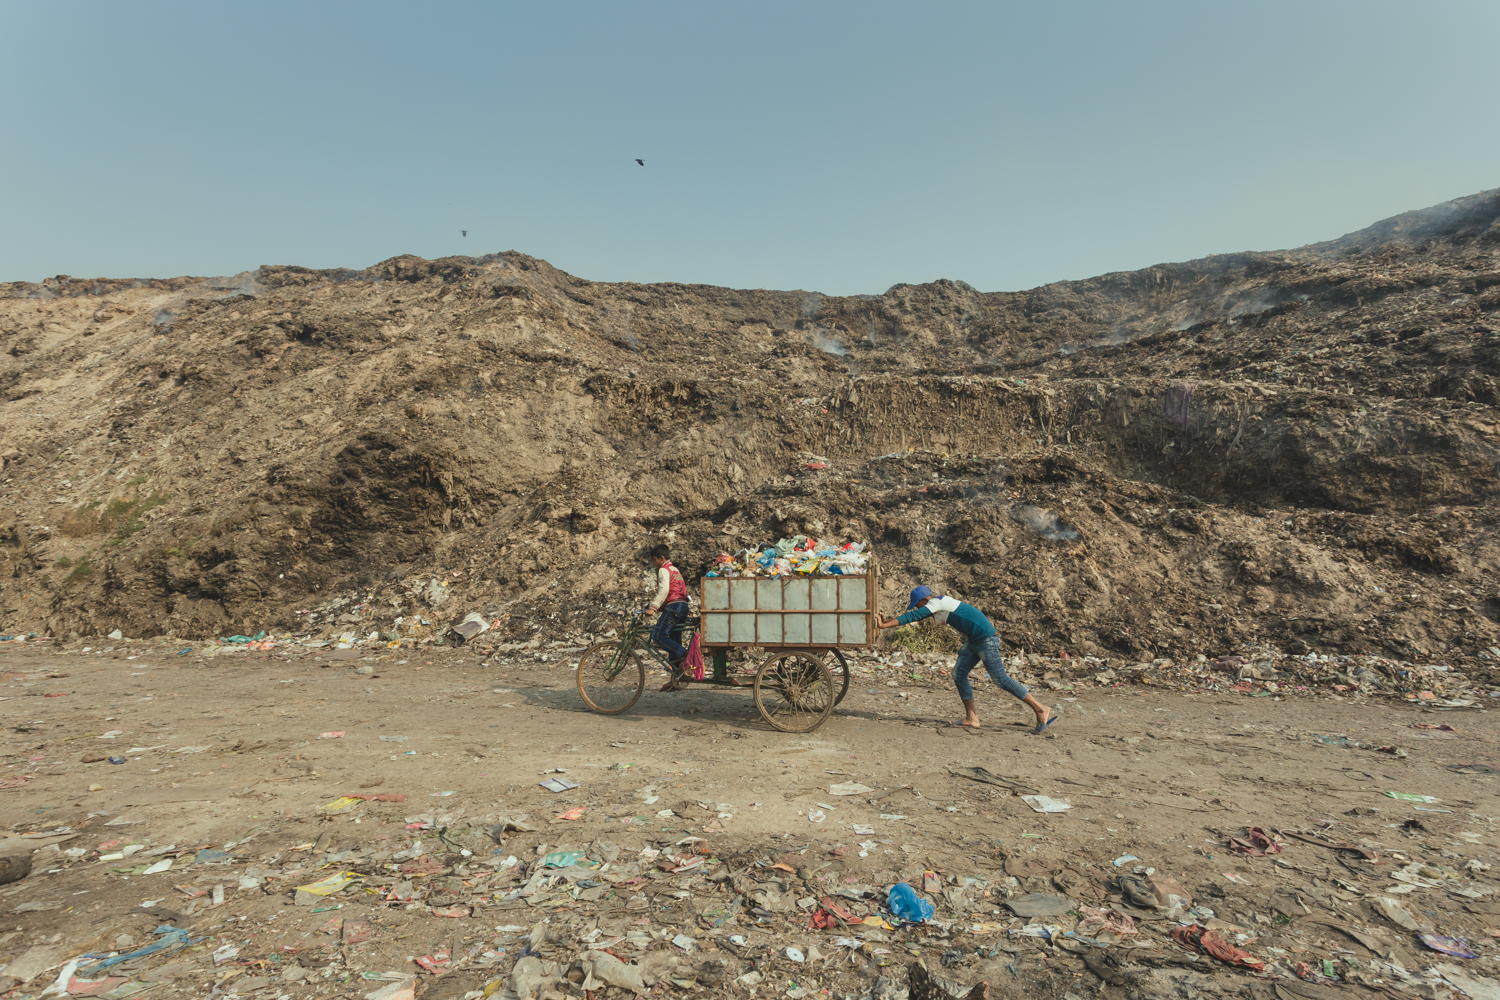 Two boys work together to transport a cart full of collected rubbish in Chittagong, Bangladesh.